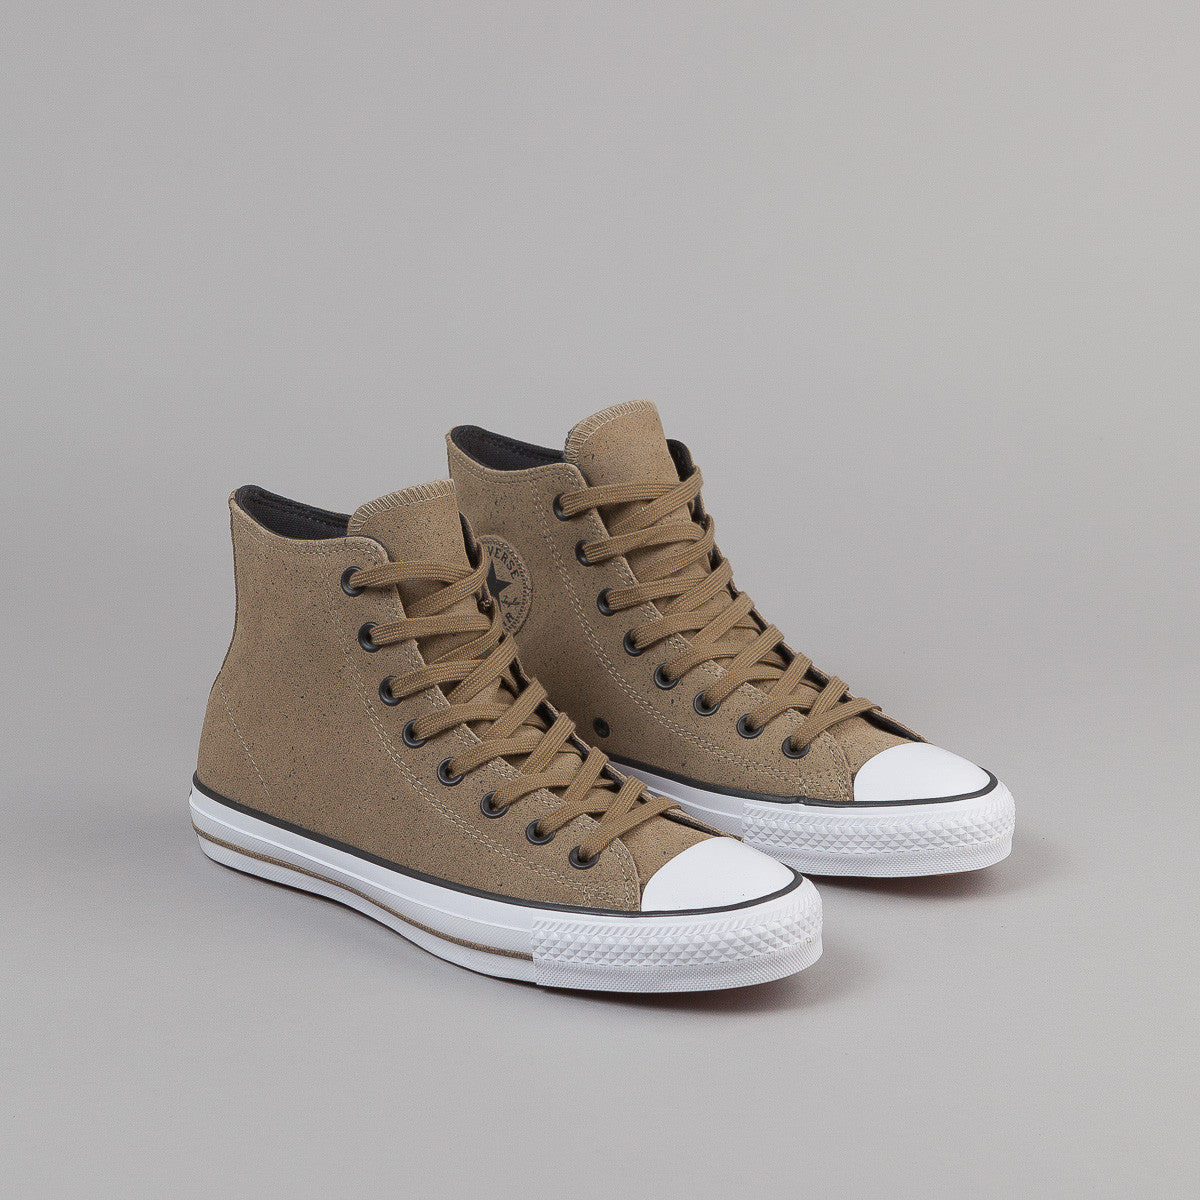 Converse CTAS Pro Hi Shoes - Chocolate / Almost Black / White